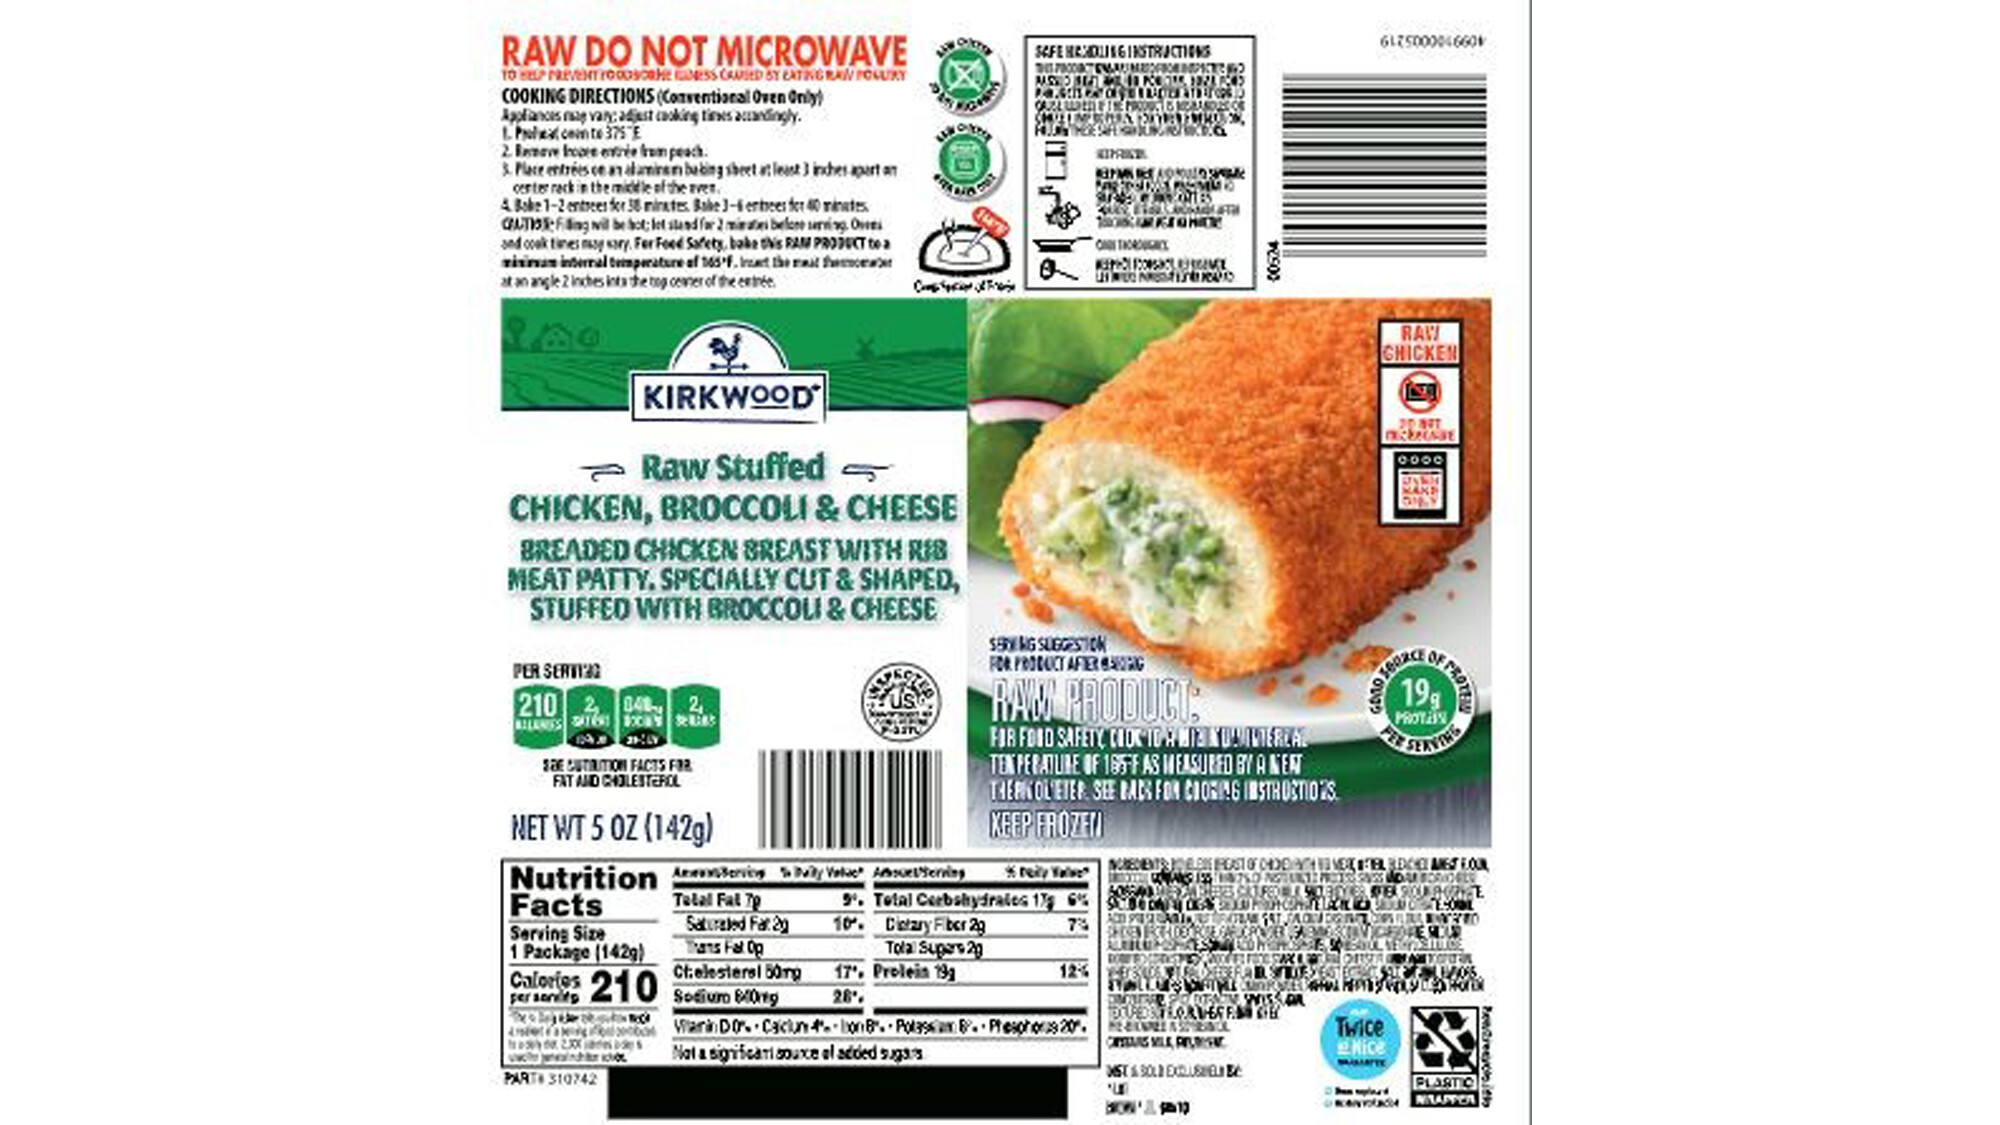 Nearly 60,000 pounds of frozen raw chicken products sold at Aldi and other stores recalled